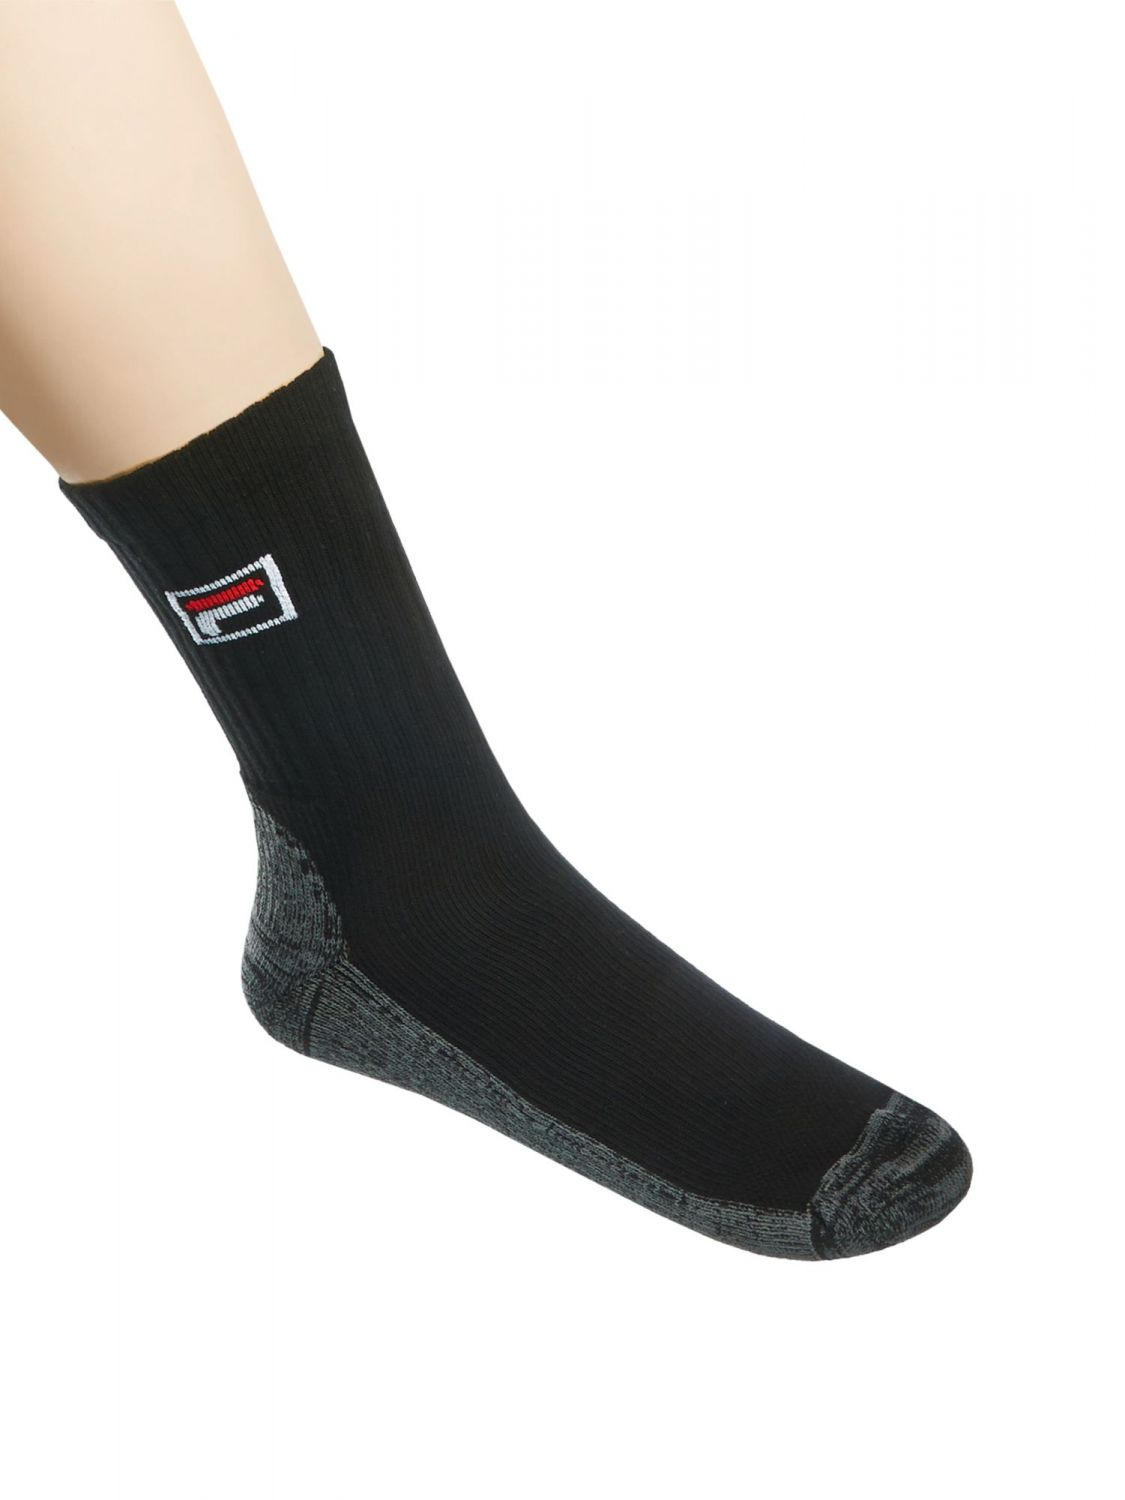 fila tennis socken 00014201567955 schwarz fila germany. Black Bedroom Furniture Sets. Home Design Ideas